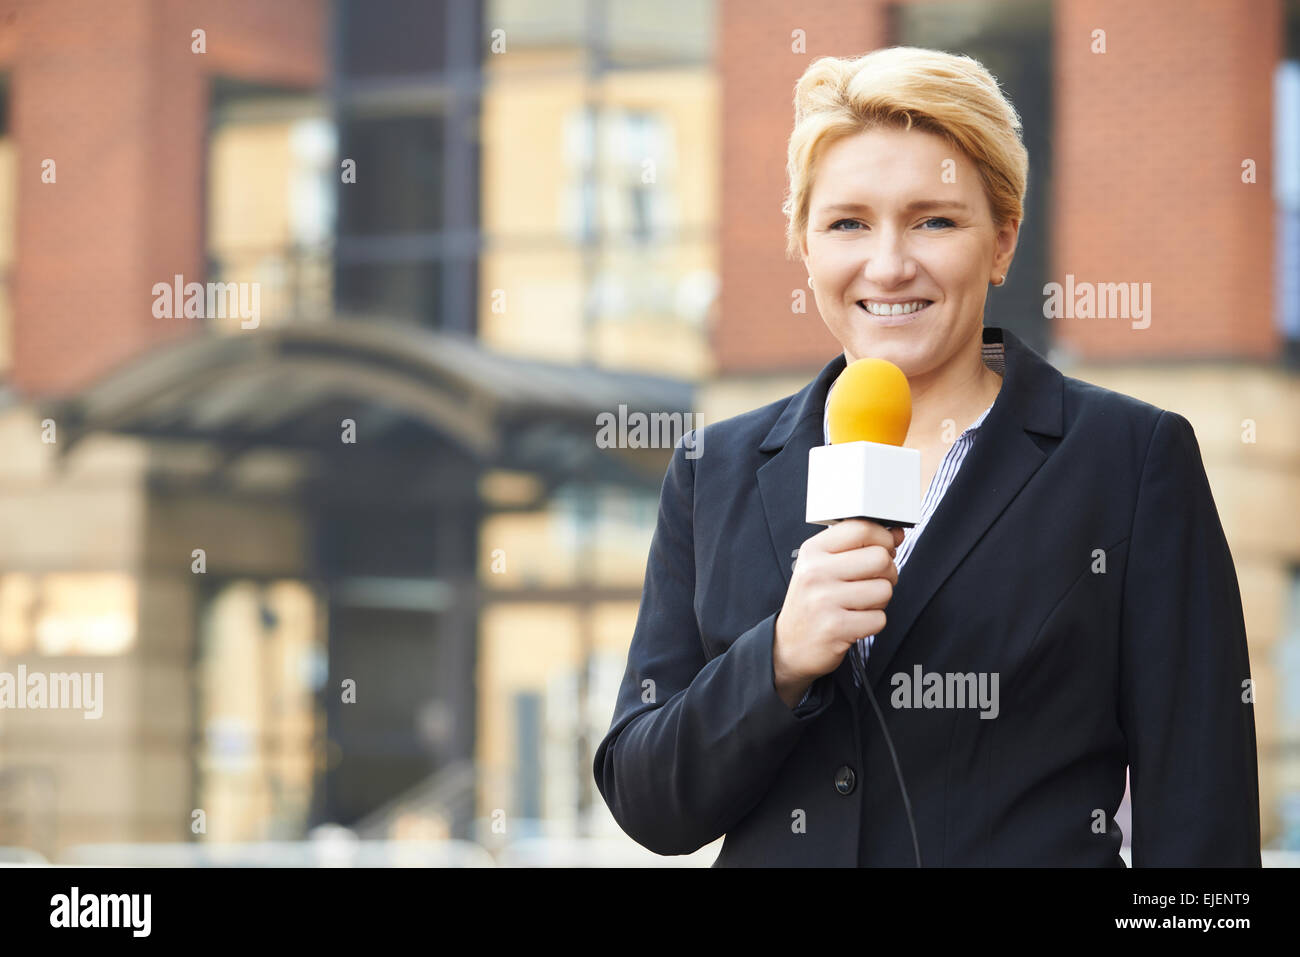 Female Journalist Broadcasting Outside Office Building - Stock Image